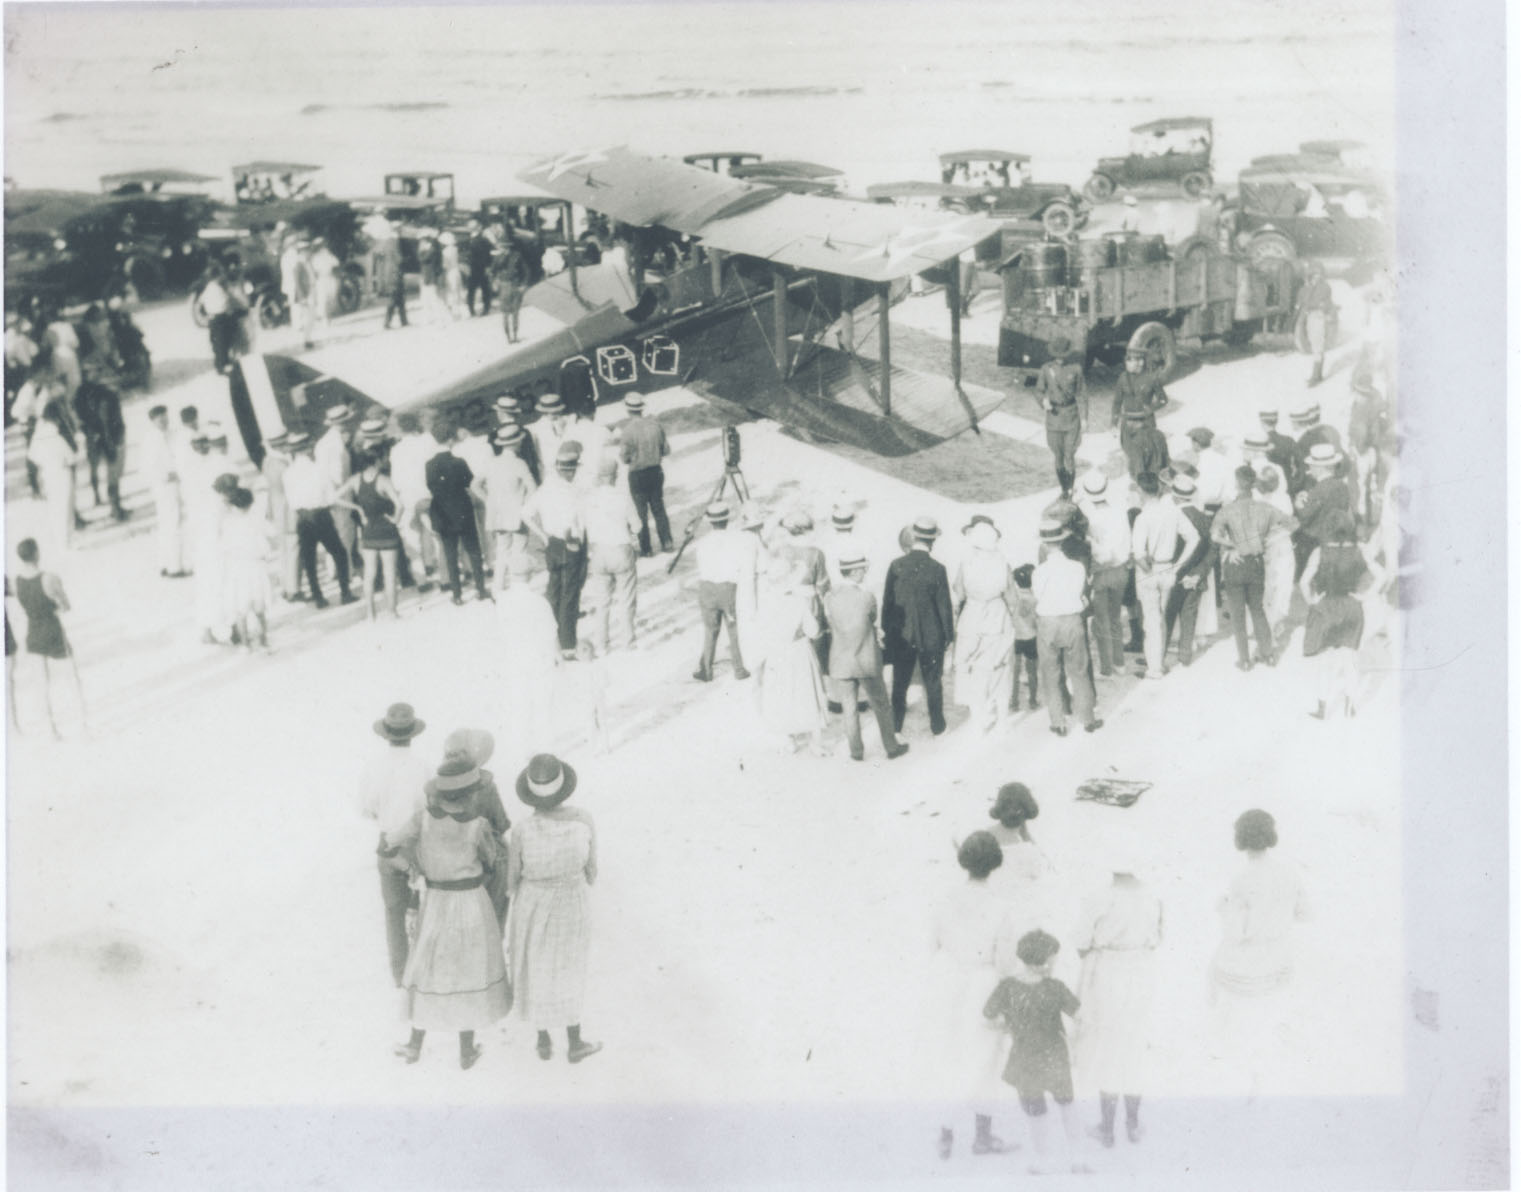 James Doolilttle with his plane and a crowd of spectators at Neptune Beach, Florida on August 6, 1922. This attempt would fail as the crowd forced Doolittle to veer too far toward the ocean, where he encountered wet sand.